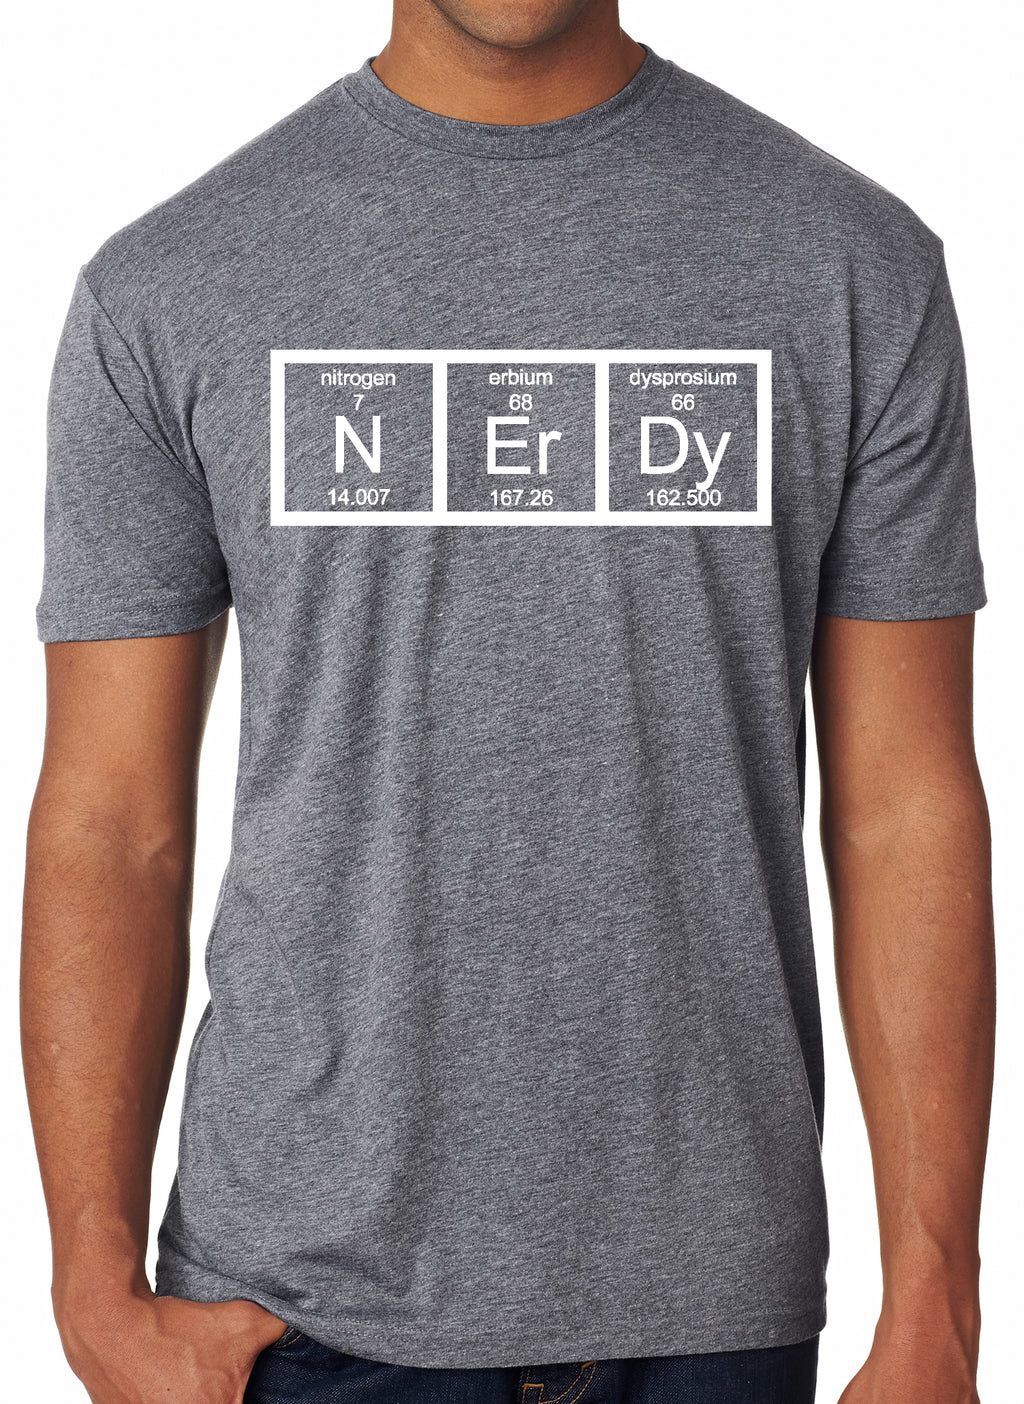 Nerdy Periodic Table T Shirt Funny Science Shirts Mens